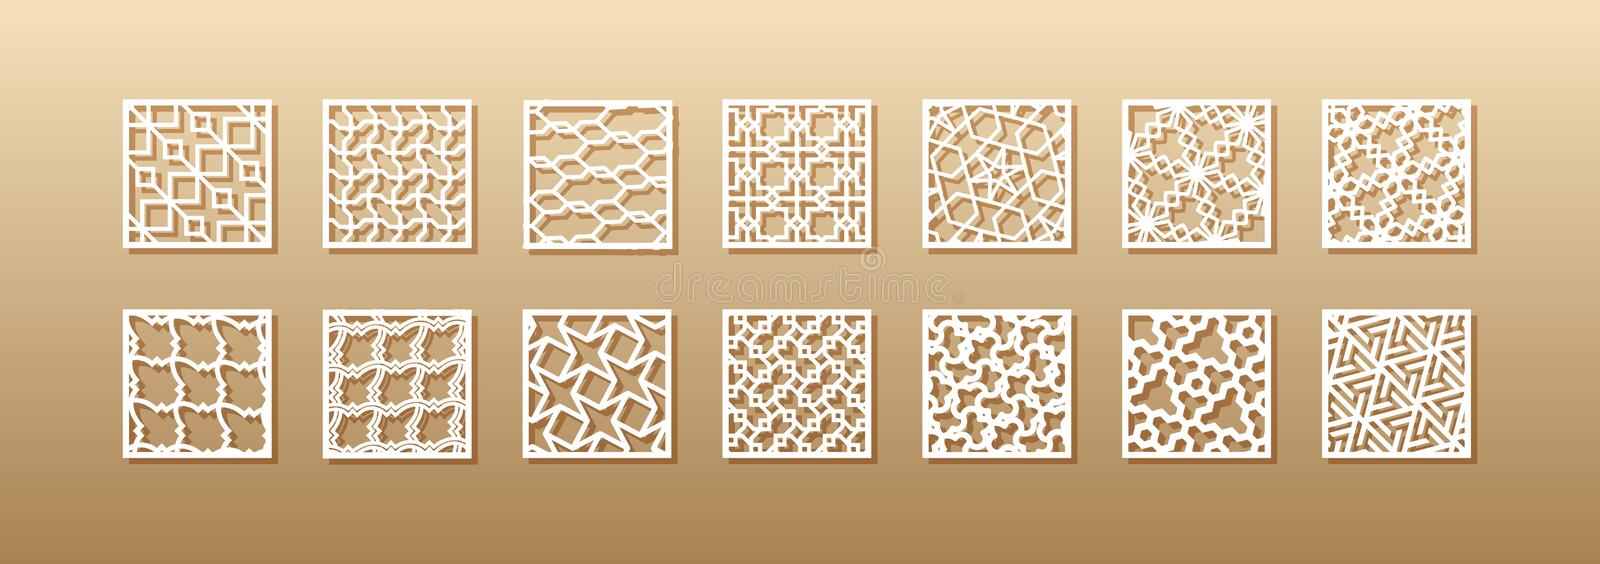 12 laser patterns for room walls in the Arabic style. Traditional oriental ornament in a rectangle for the design of a. Screen, privacy panels, a fence. Laser vector illustration